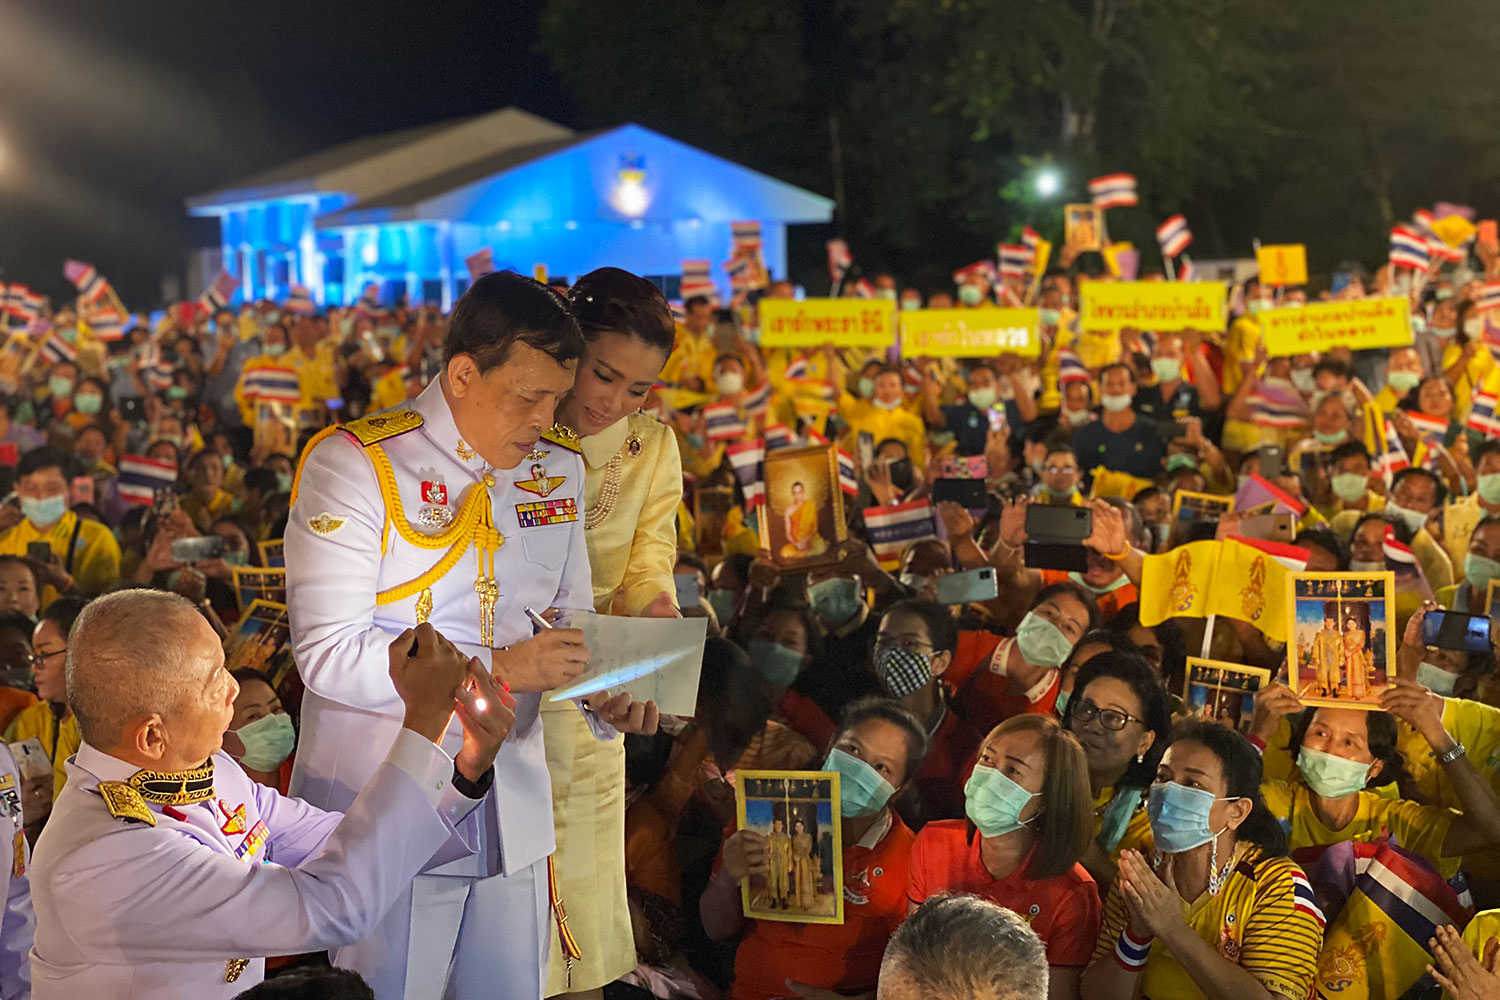 Written with love: His Majesty the King, accompanied by Her Majesty the Queen, writes a message for a well-wisher at Wing 23 in Udon Thani before presiding over the opening of an office building at Udon Thani Juvenile and Family Court in Muang district.